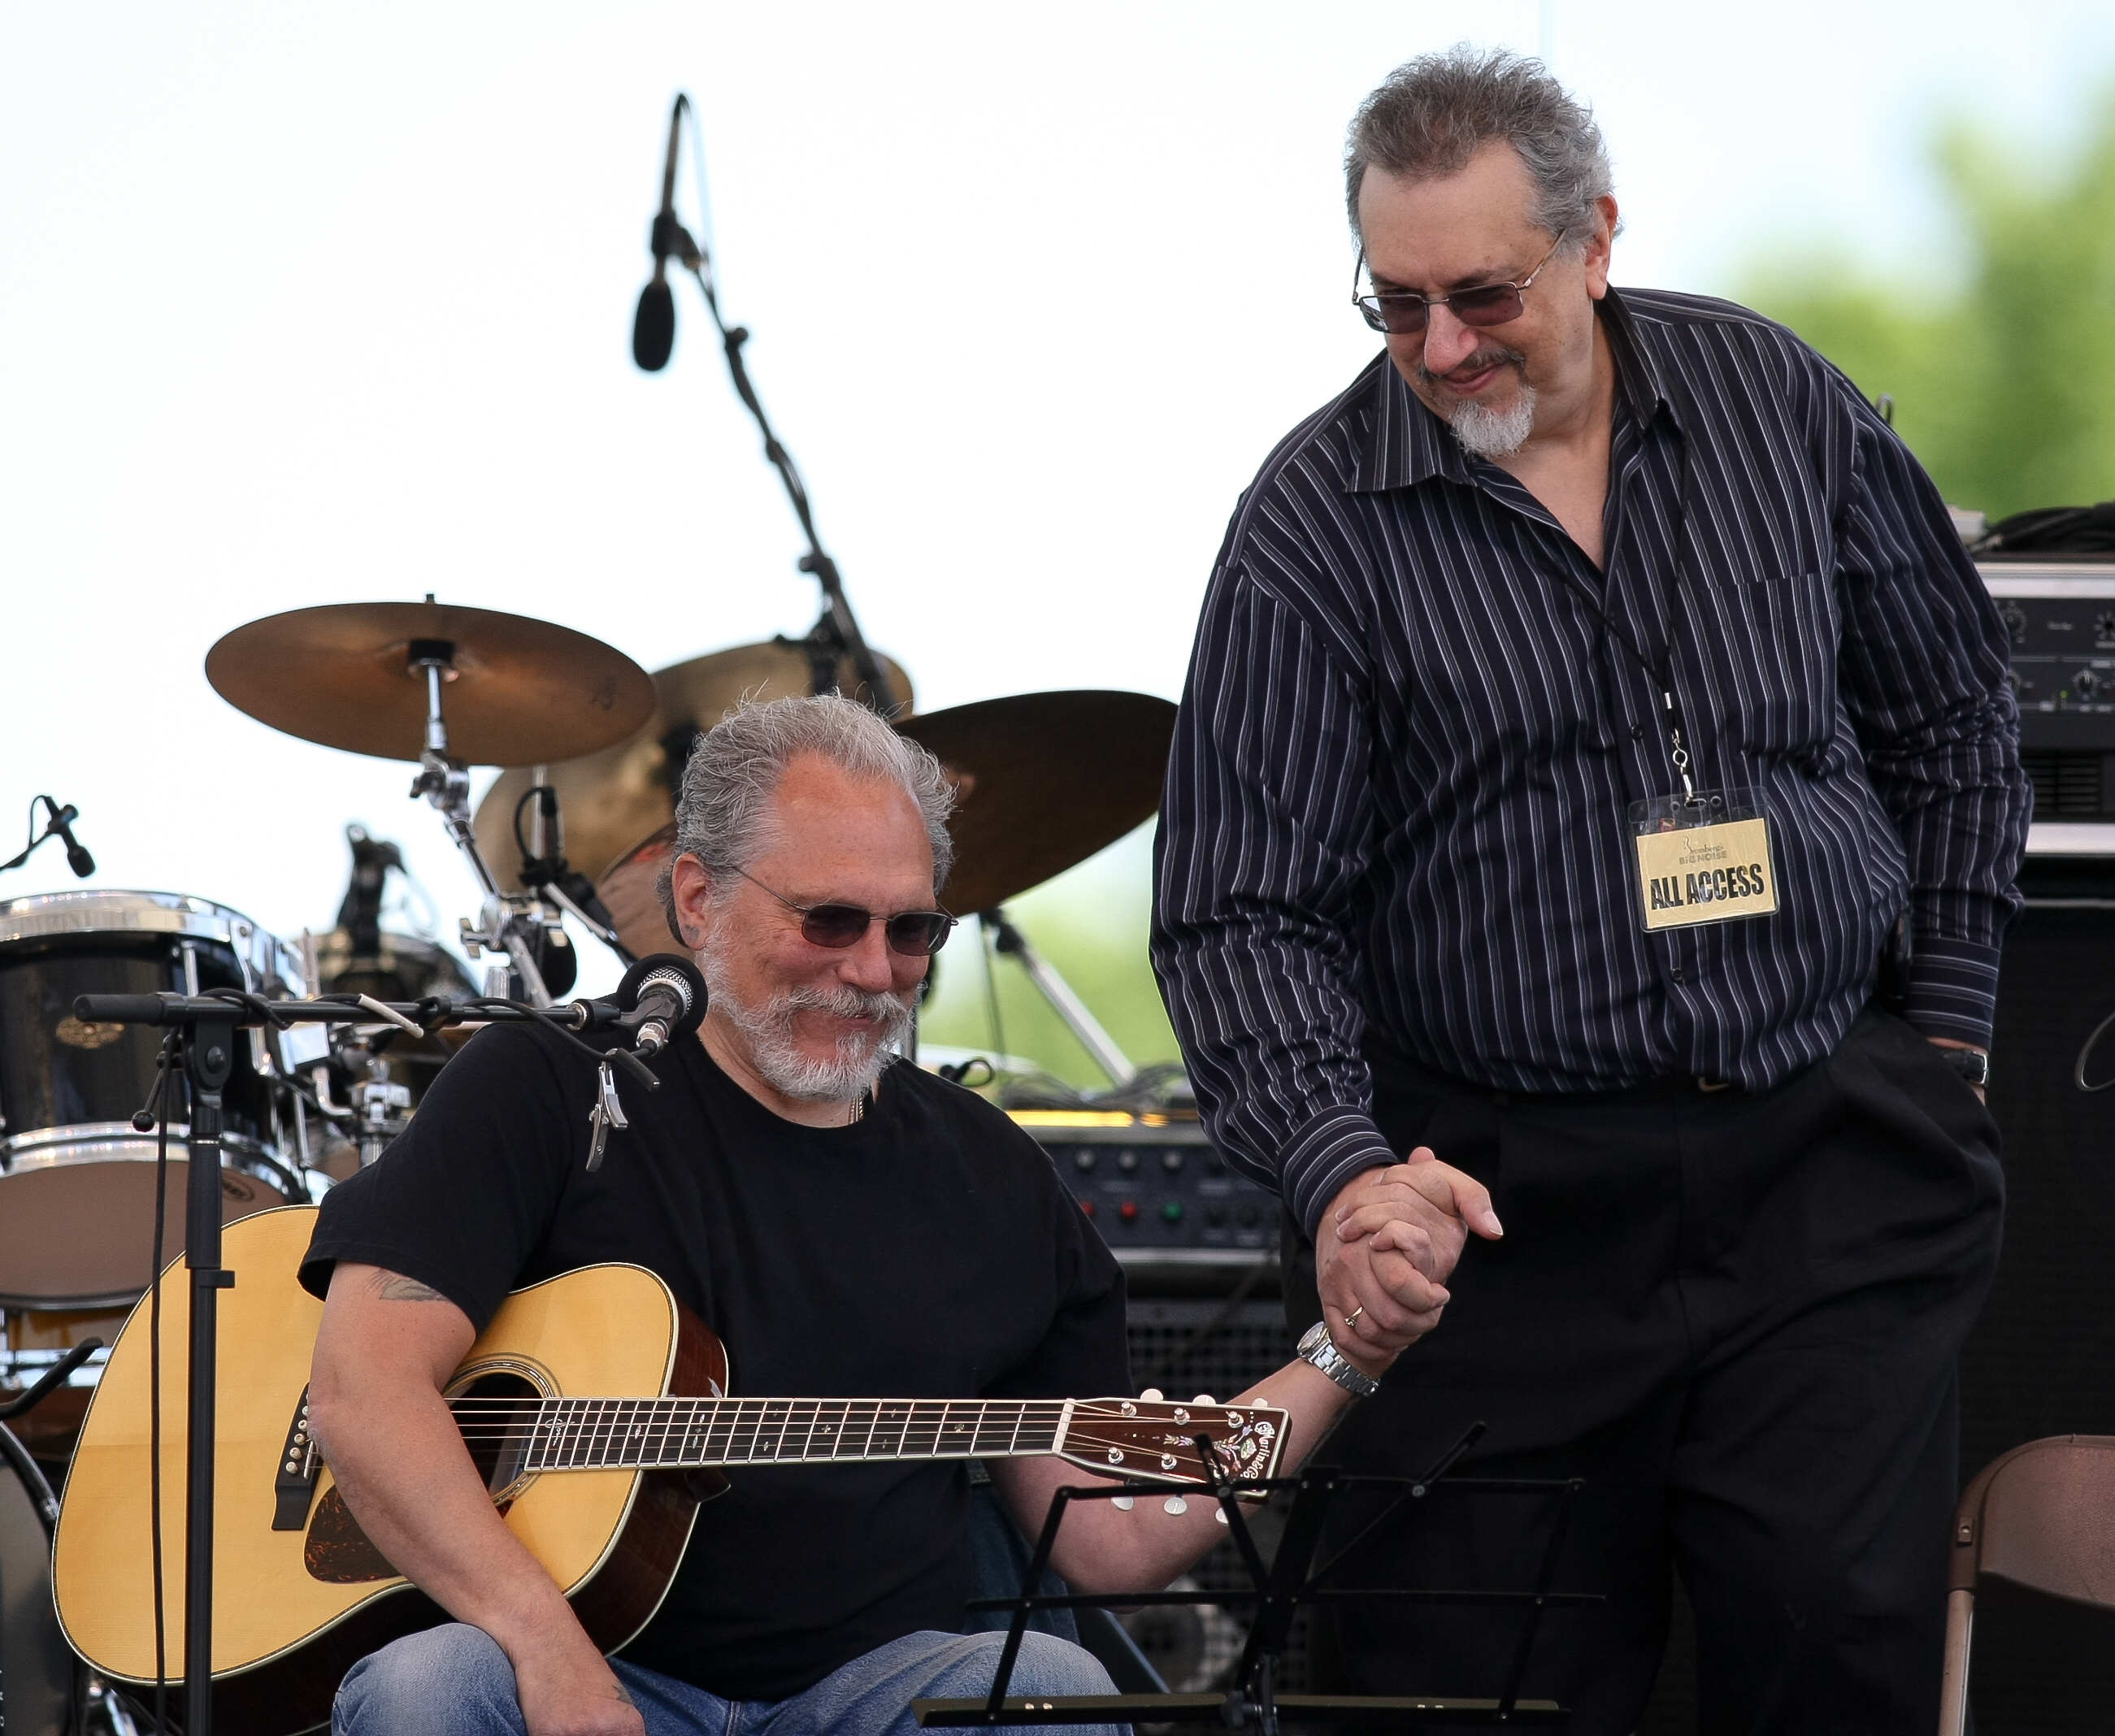 Big Noise, David Bromberg's Wilmington music festival, won't be held this year